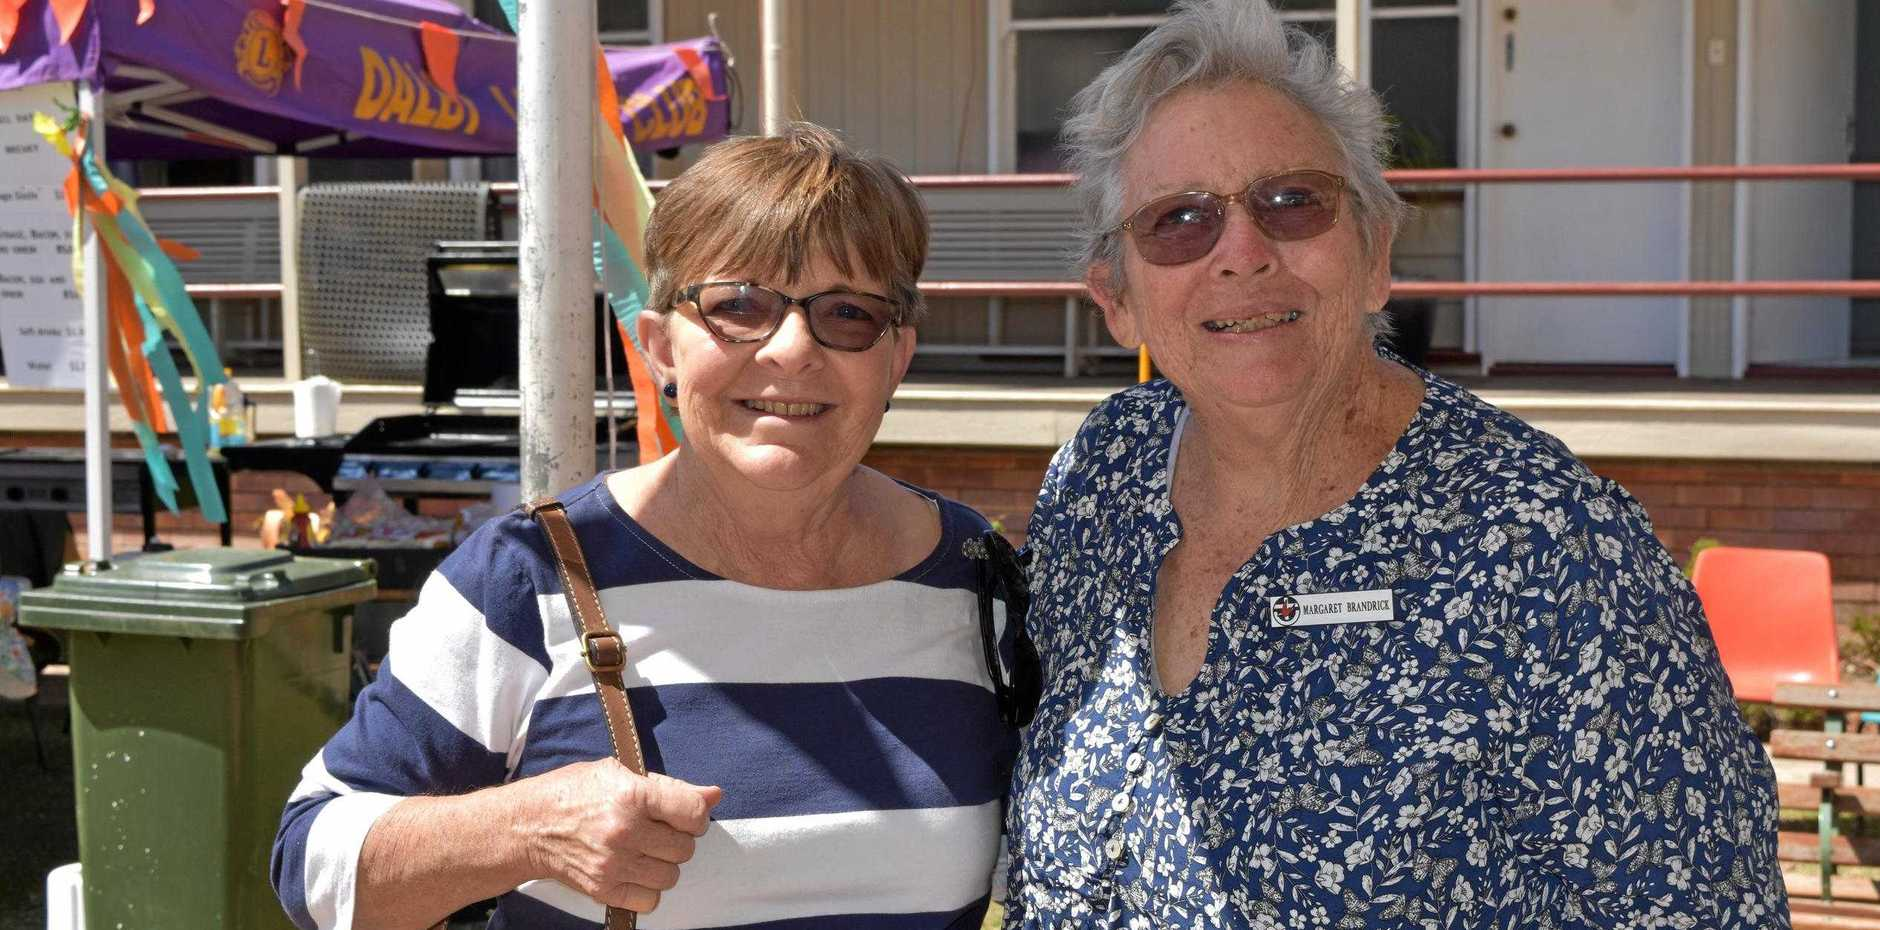 MARKET DAY: Audrey Fresser and Margaret Brandrick at the annual Dalby Uniting Church market day and garage sale.